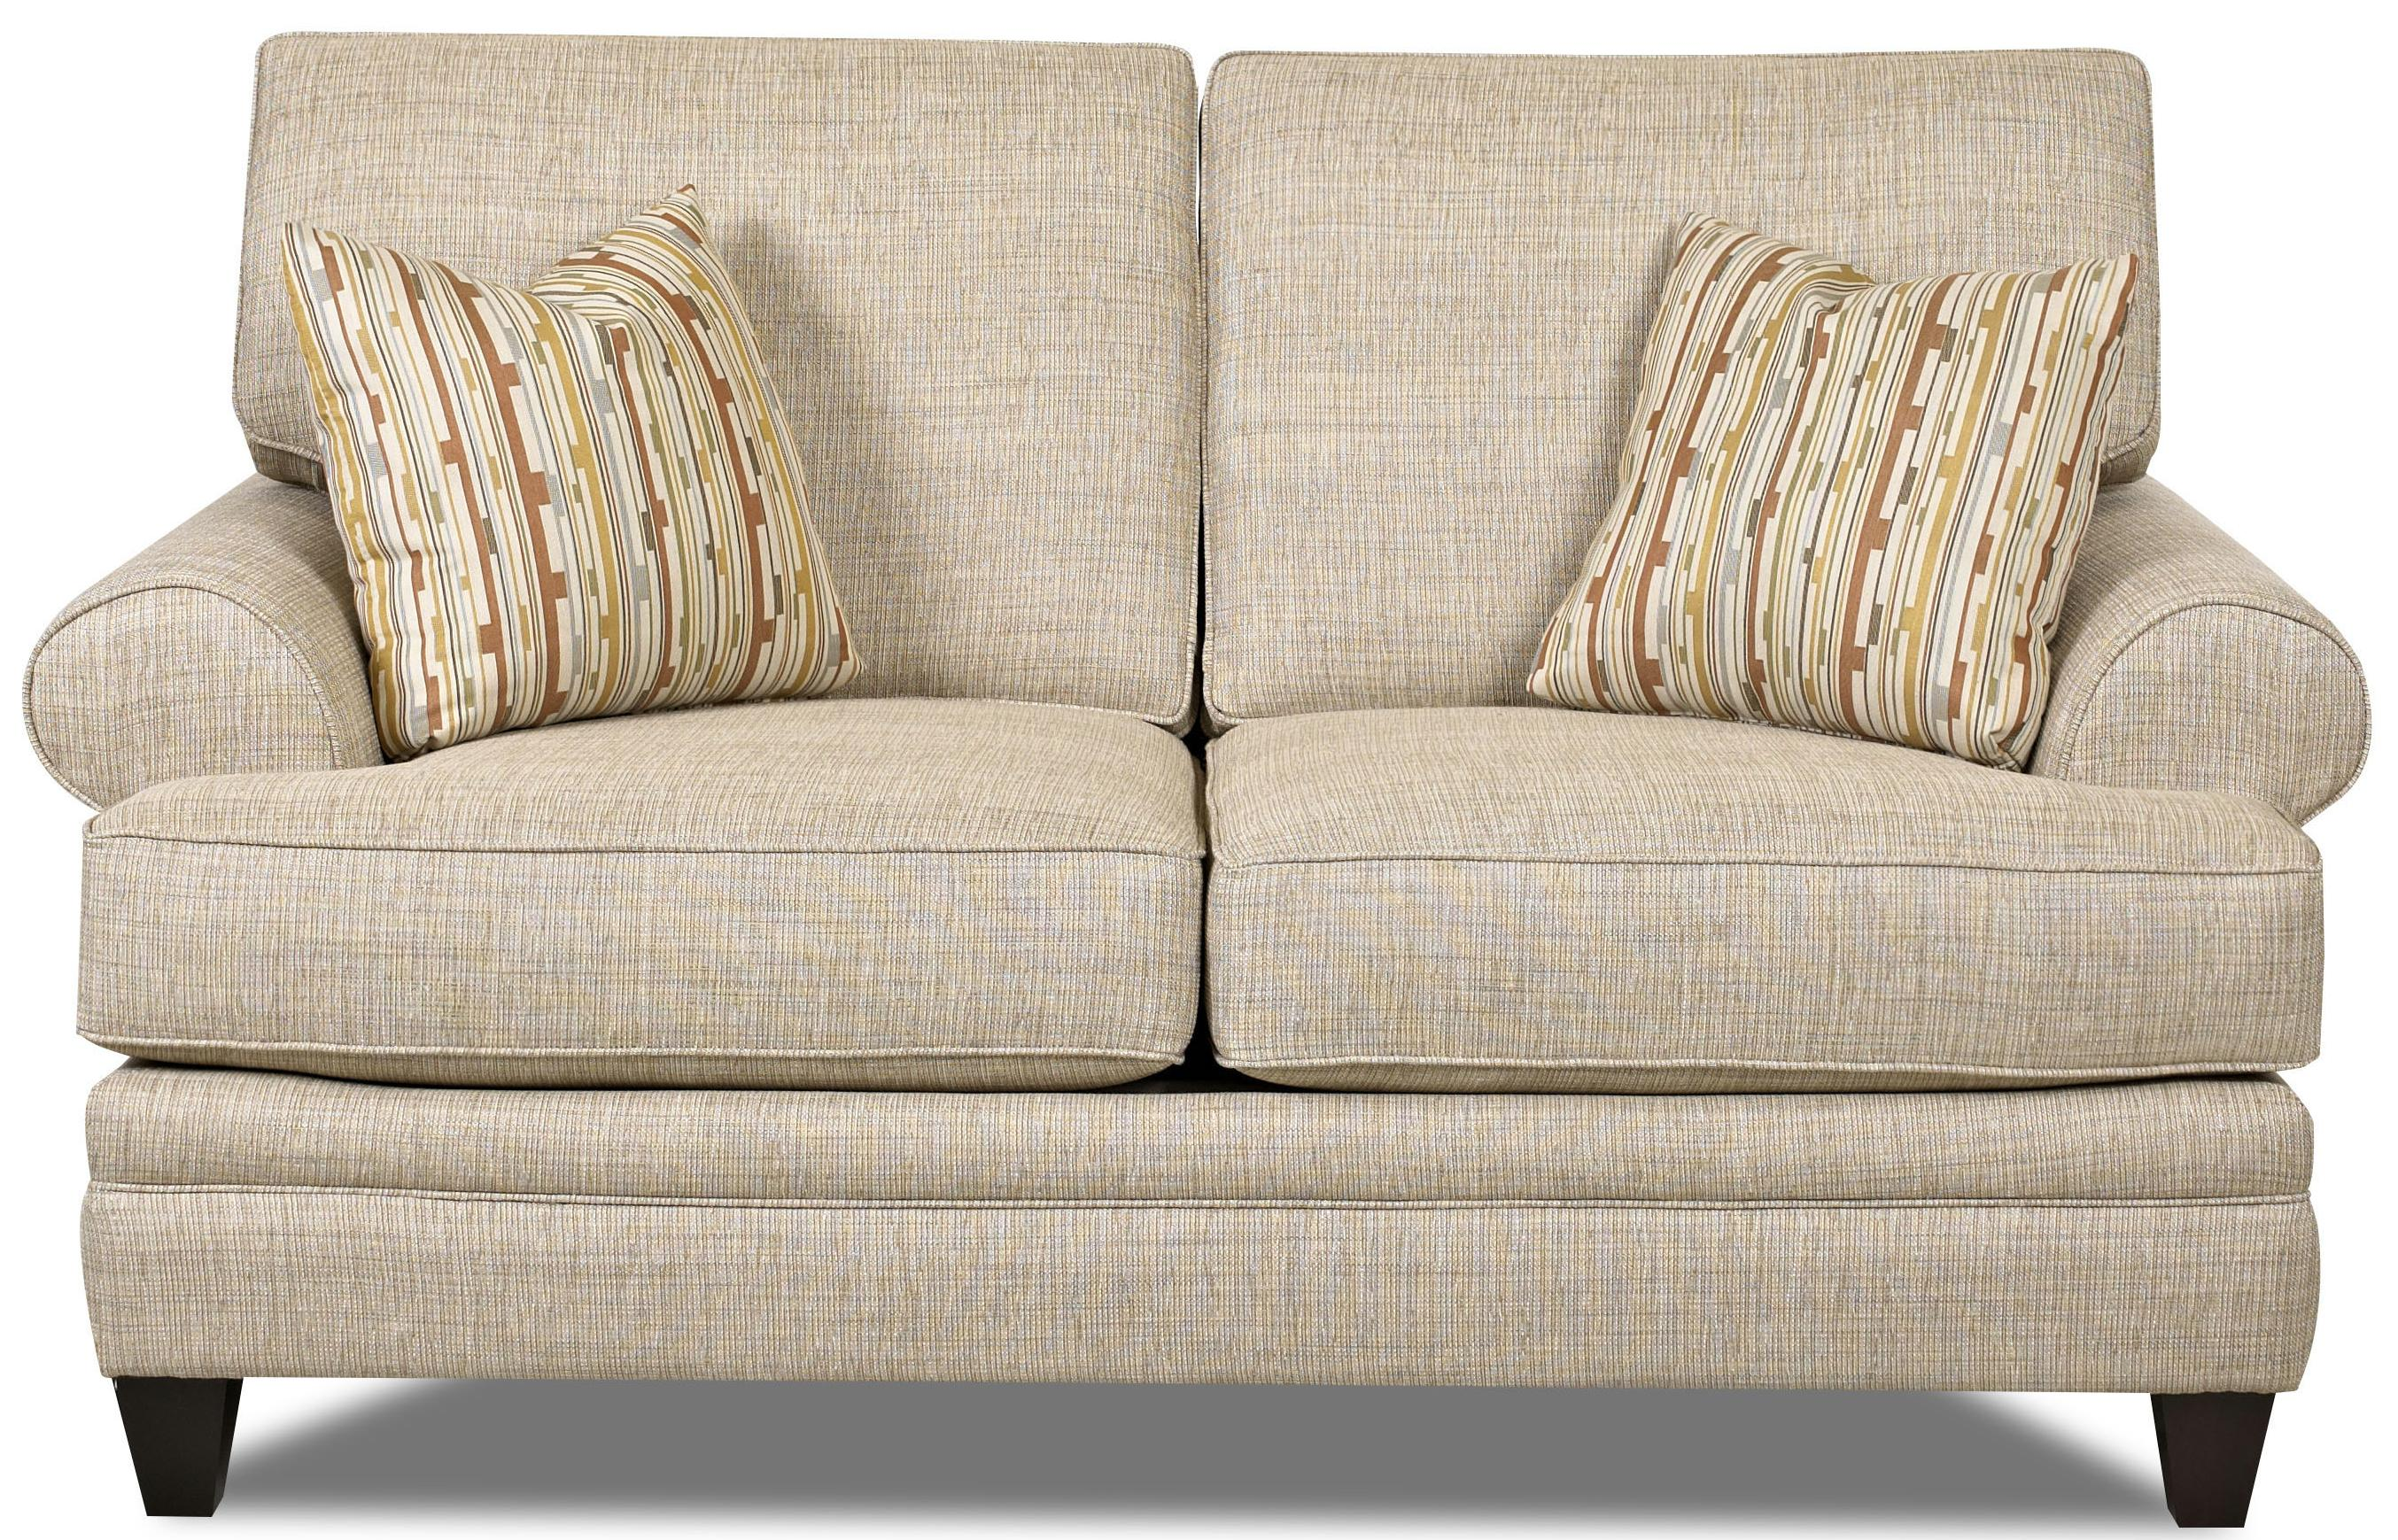 Klaussner Fresno Transitional Loveseat With Low Profile Rolled Arms Value City Furniture